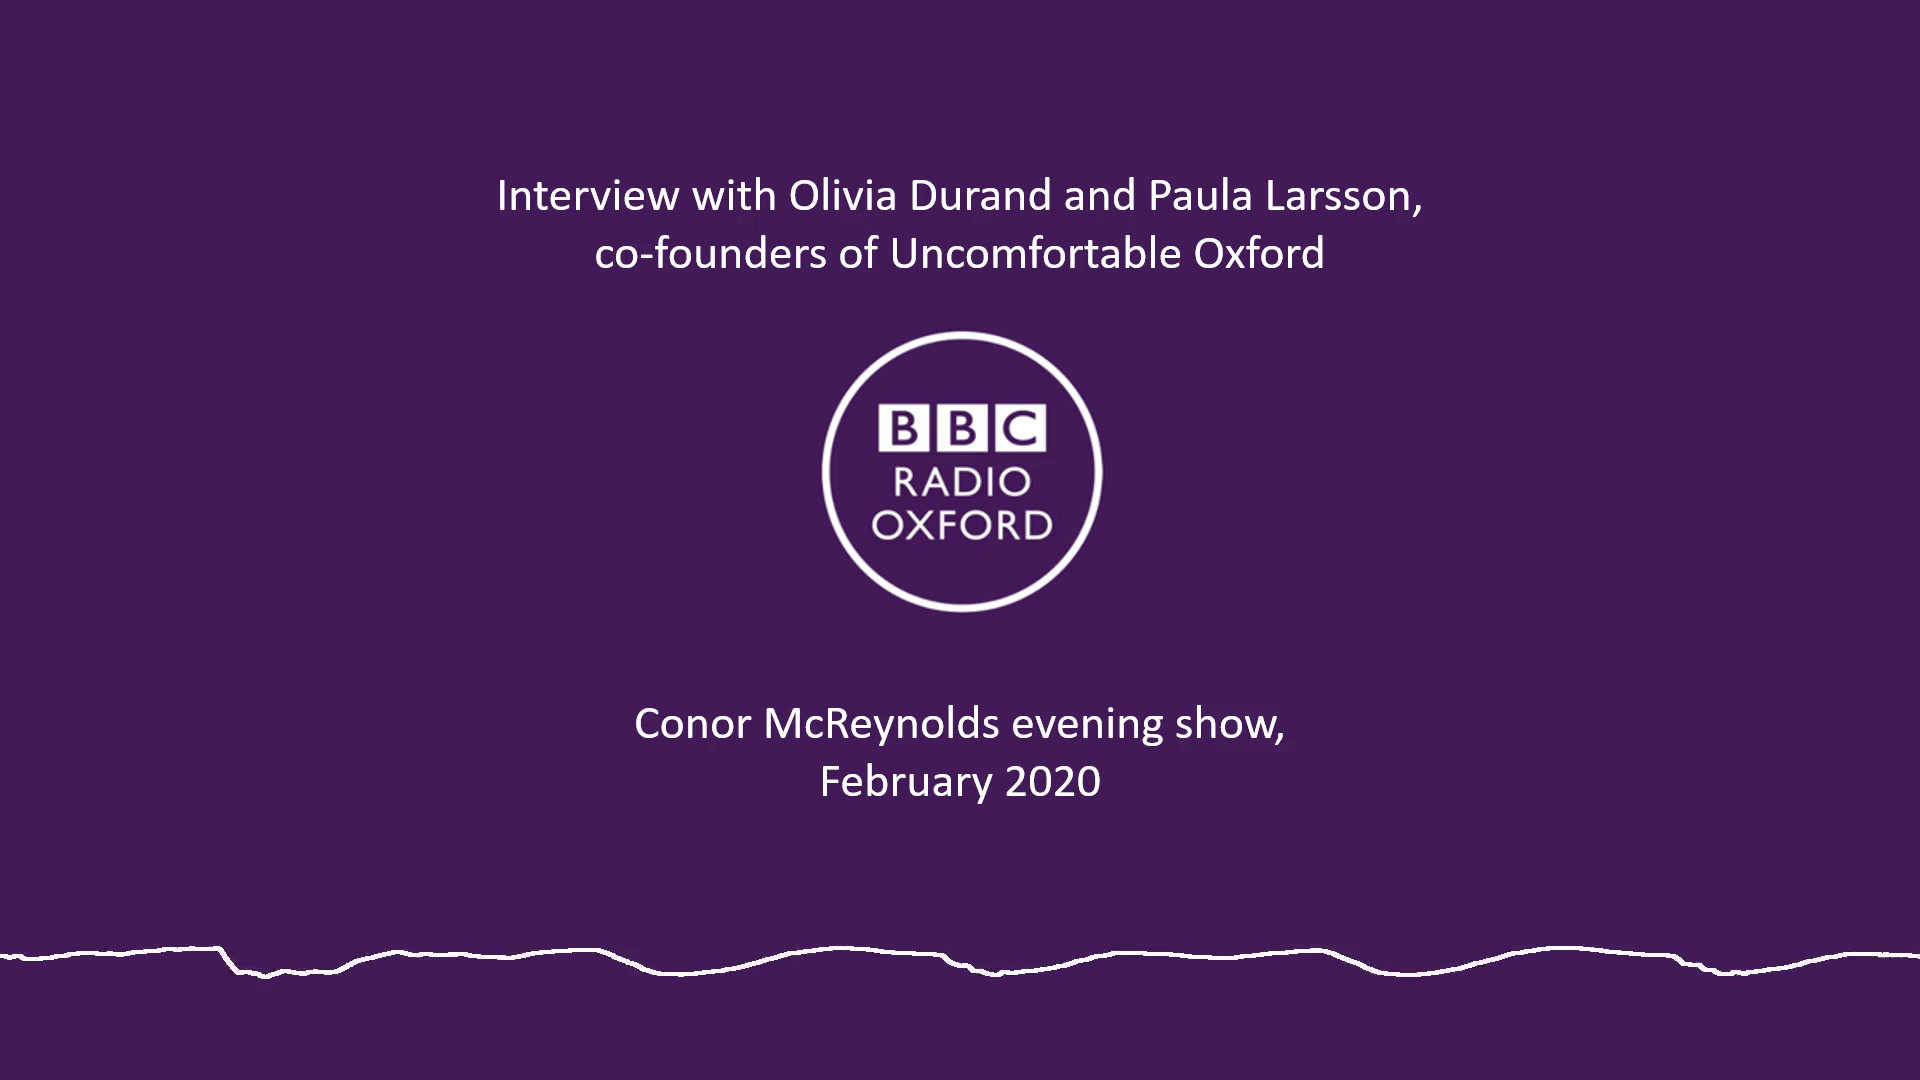 Interview with co-founders of Uncomfortable Oxford